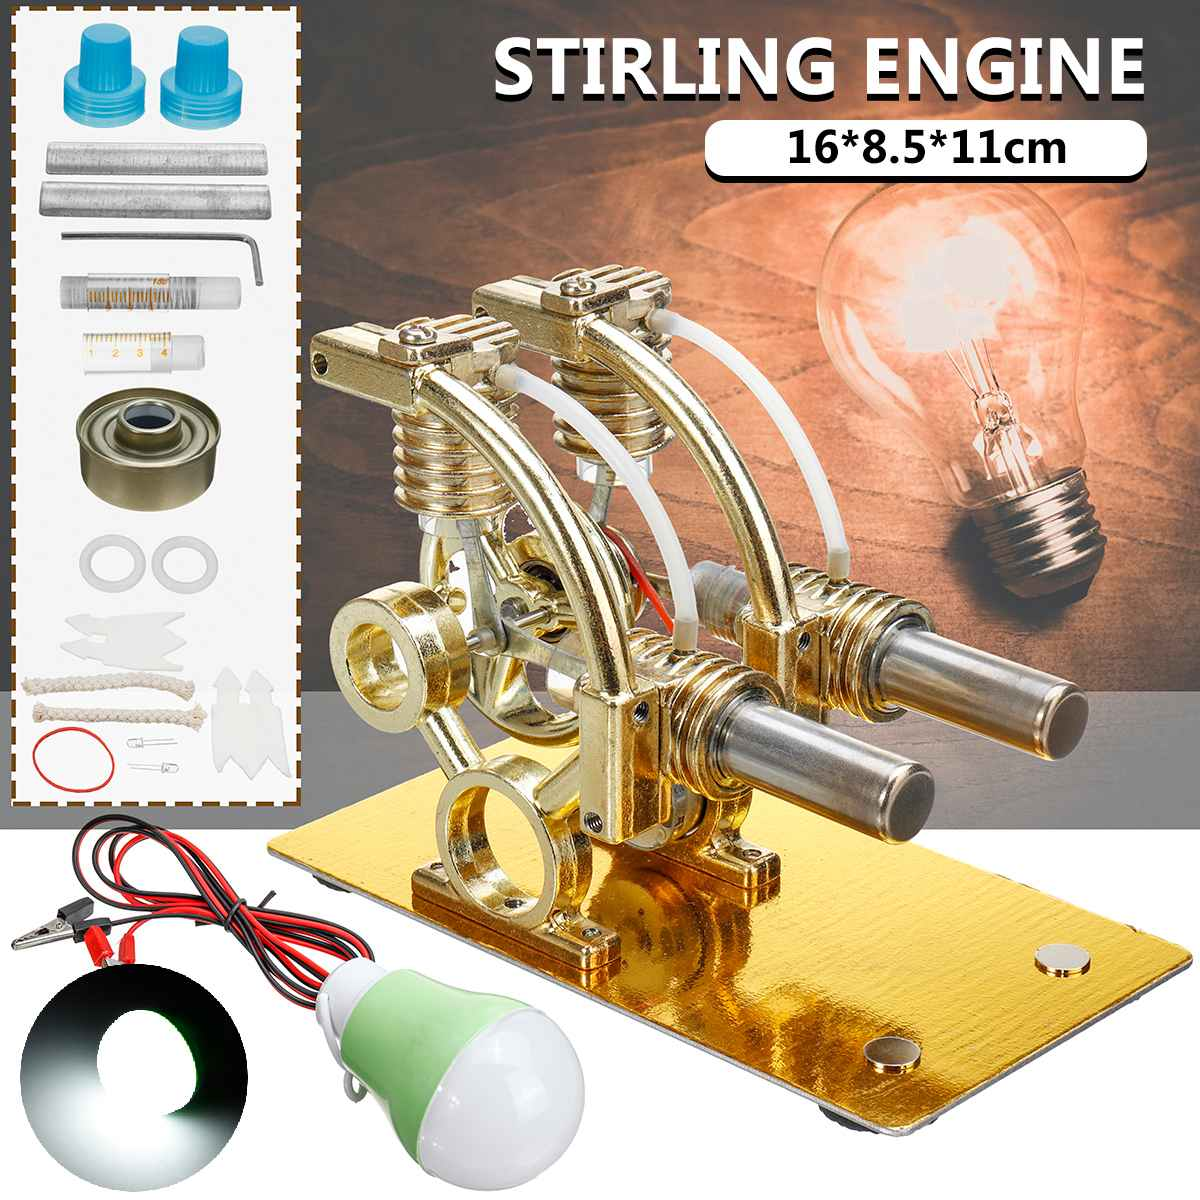 Double-cylinder Micro DIY Stirling Engine External Combustion Engine School Demonstration Early Learning Education Toy For Kid